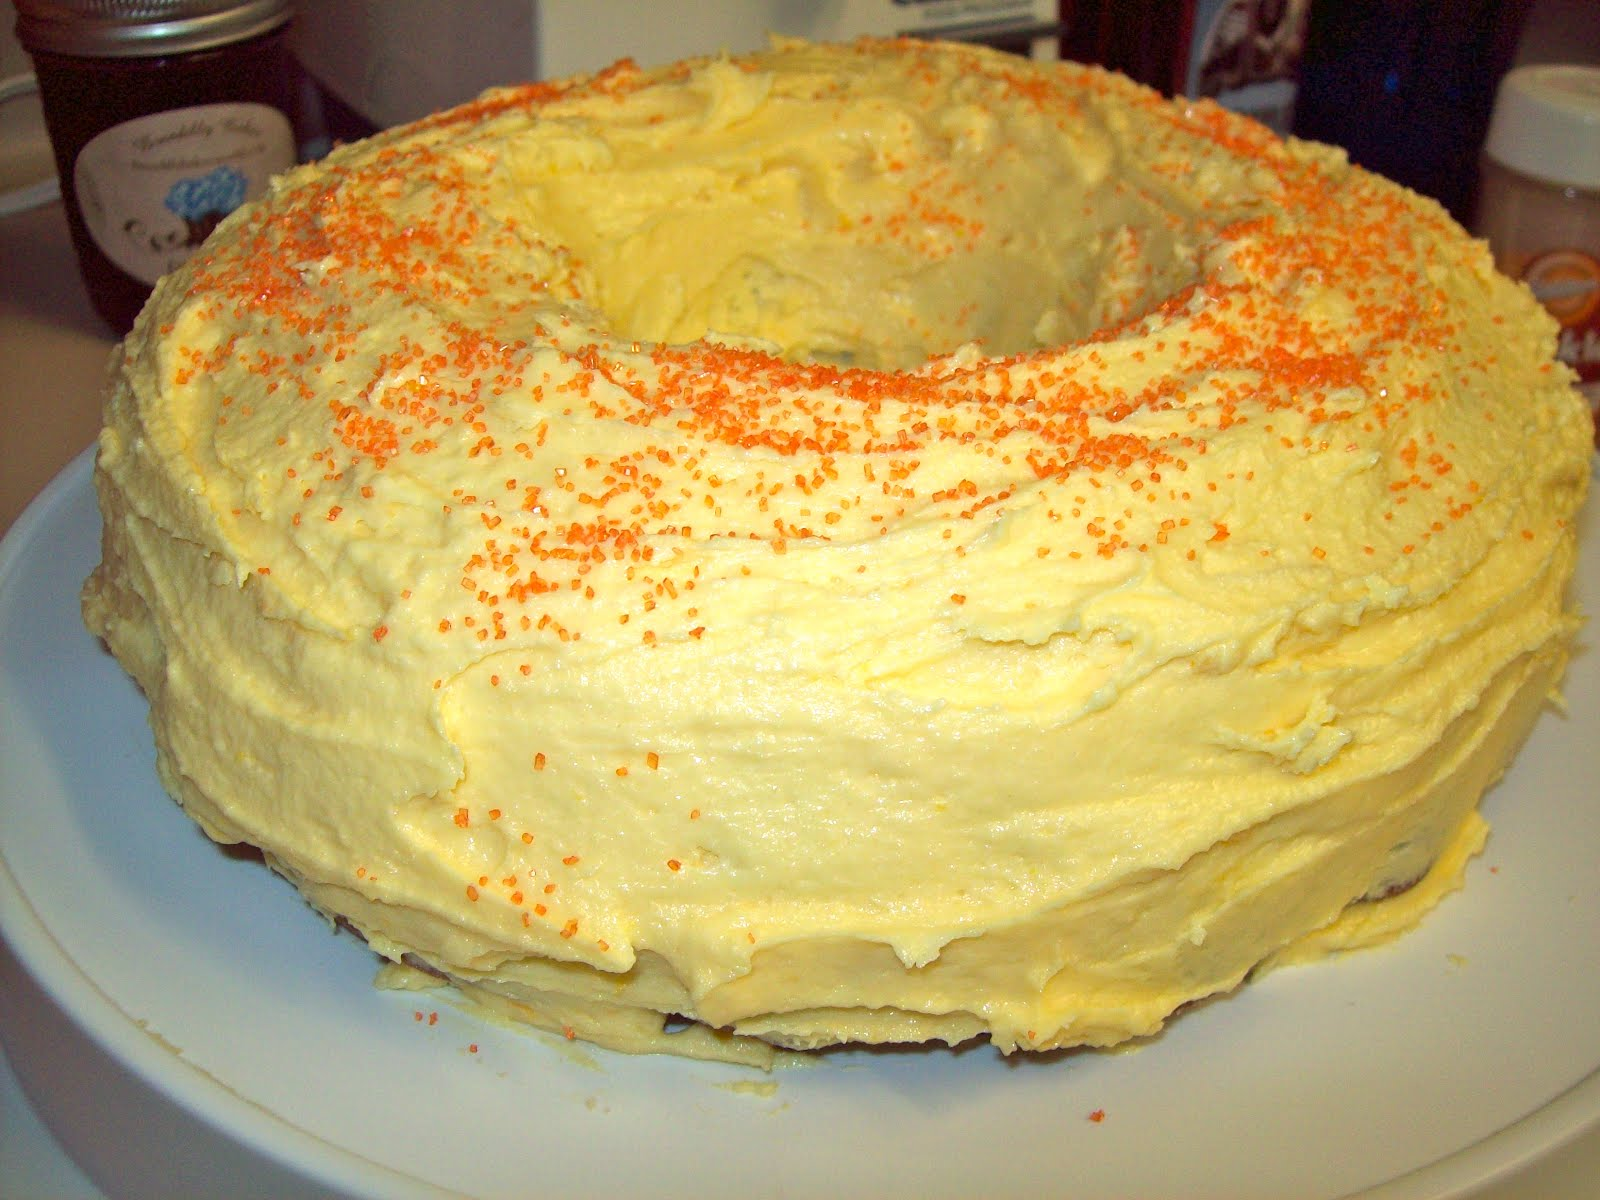 Brendilly's Kitchen: Orange Cream Cake